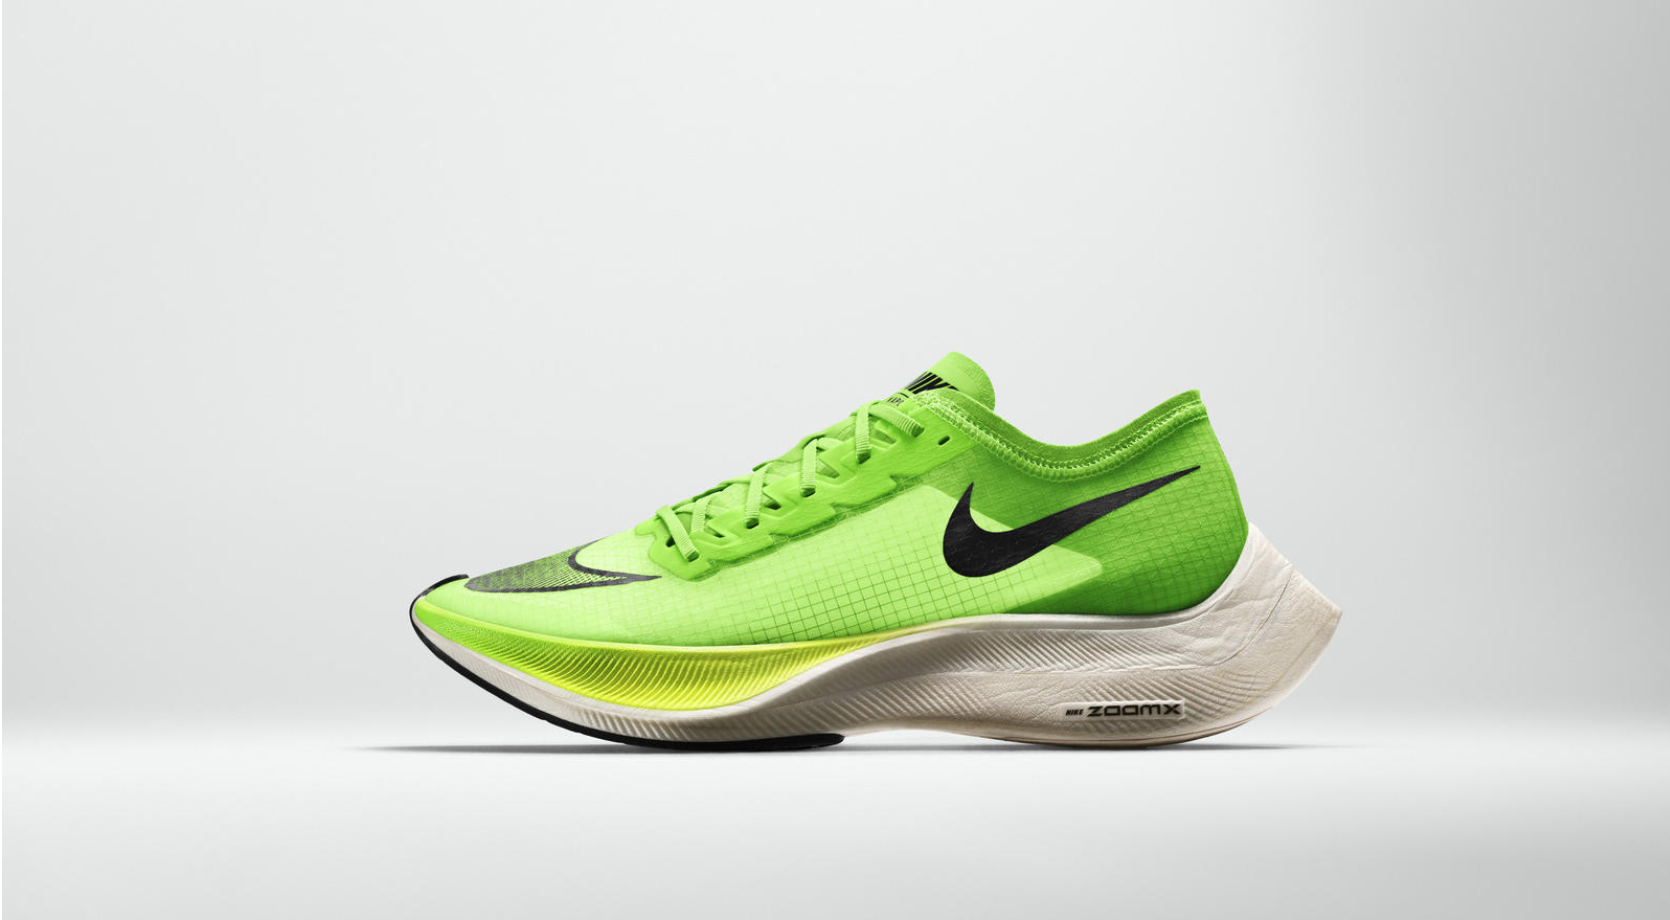 Nike and their Running Shoes Technology Skonyheter Oppdatert  Shoes News Updated